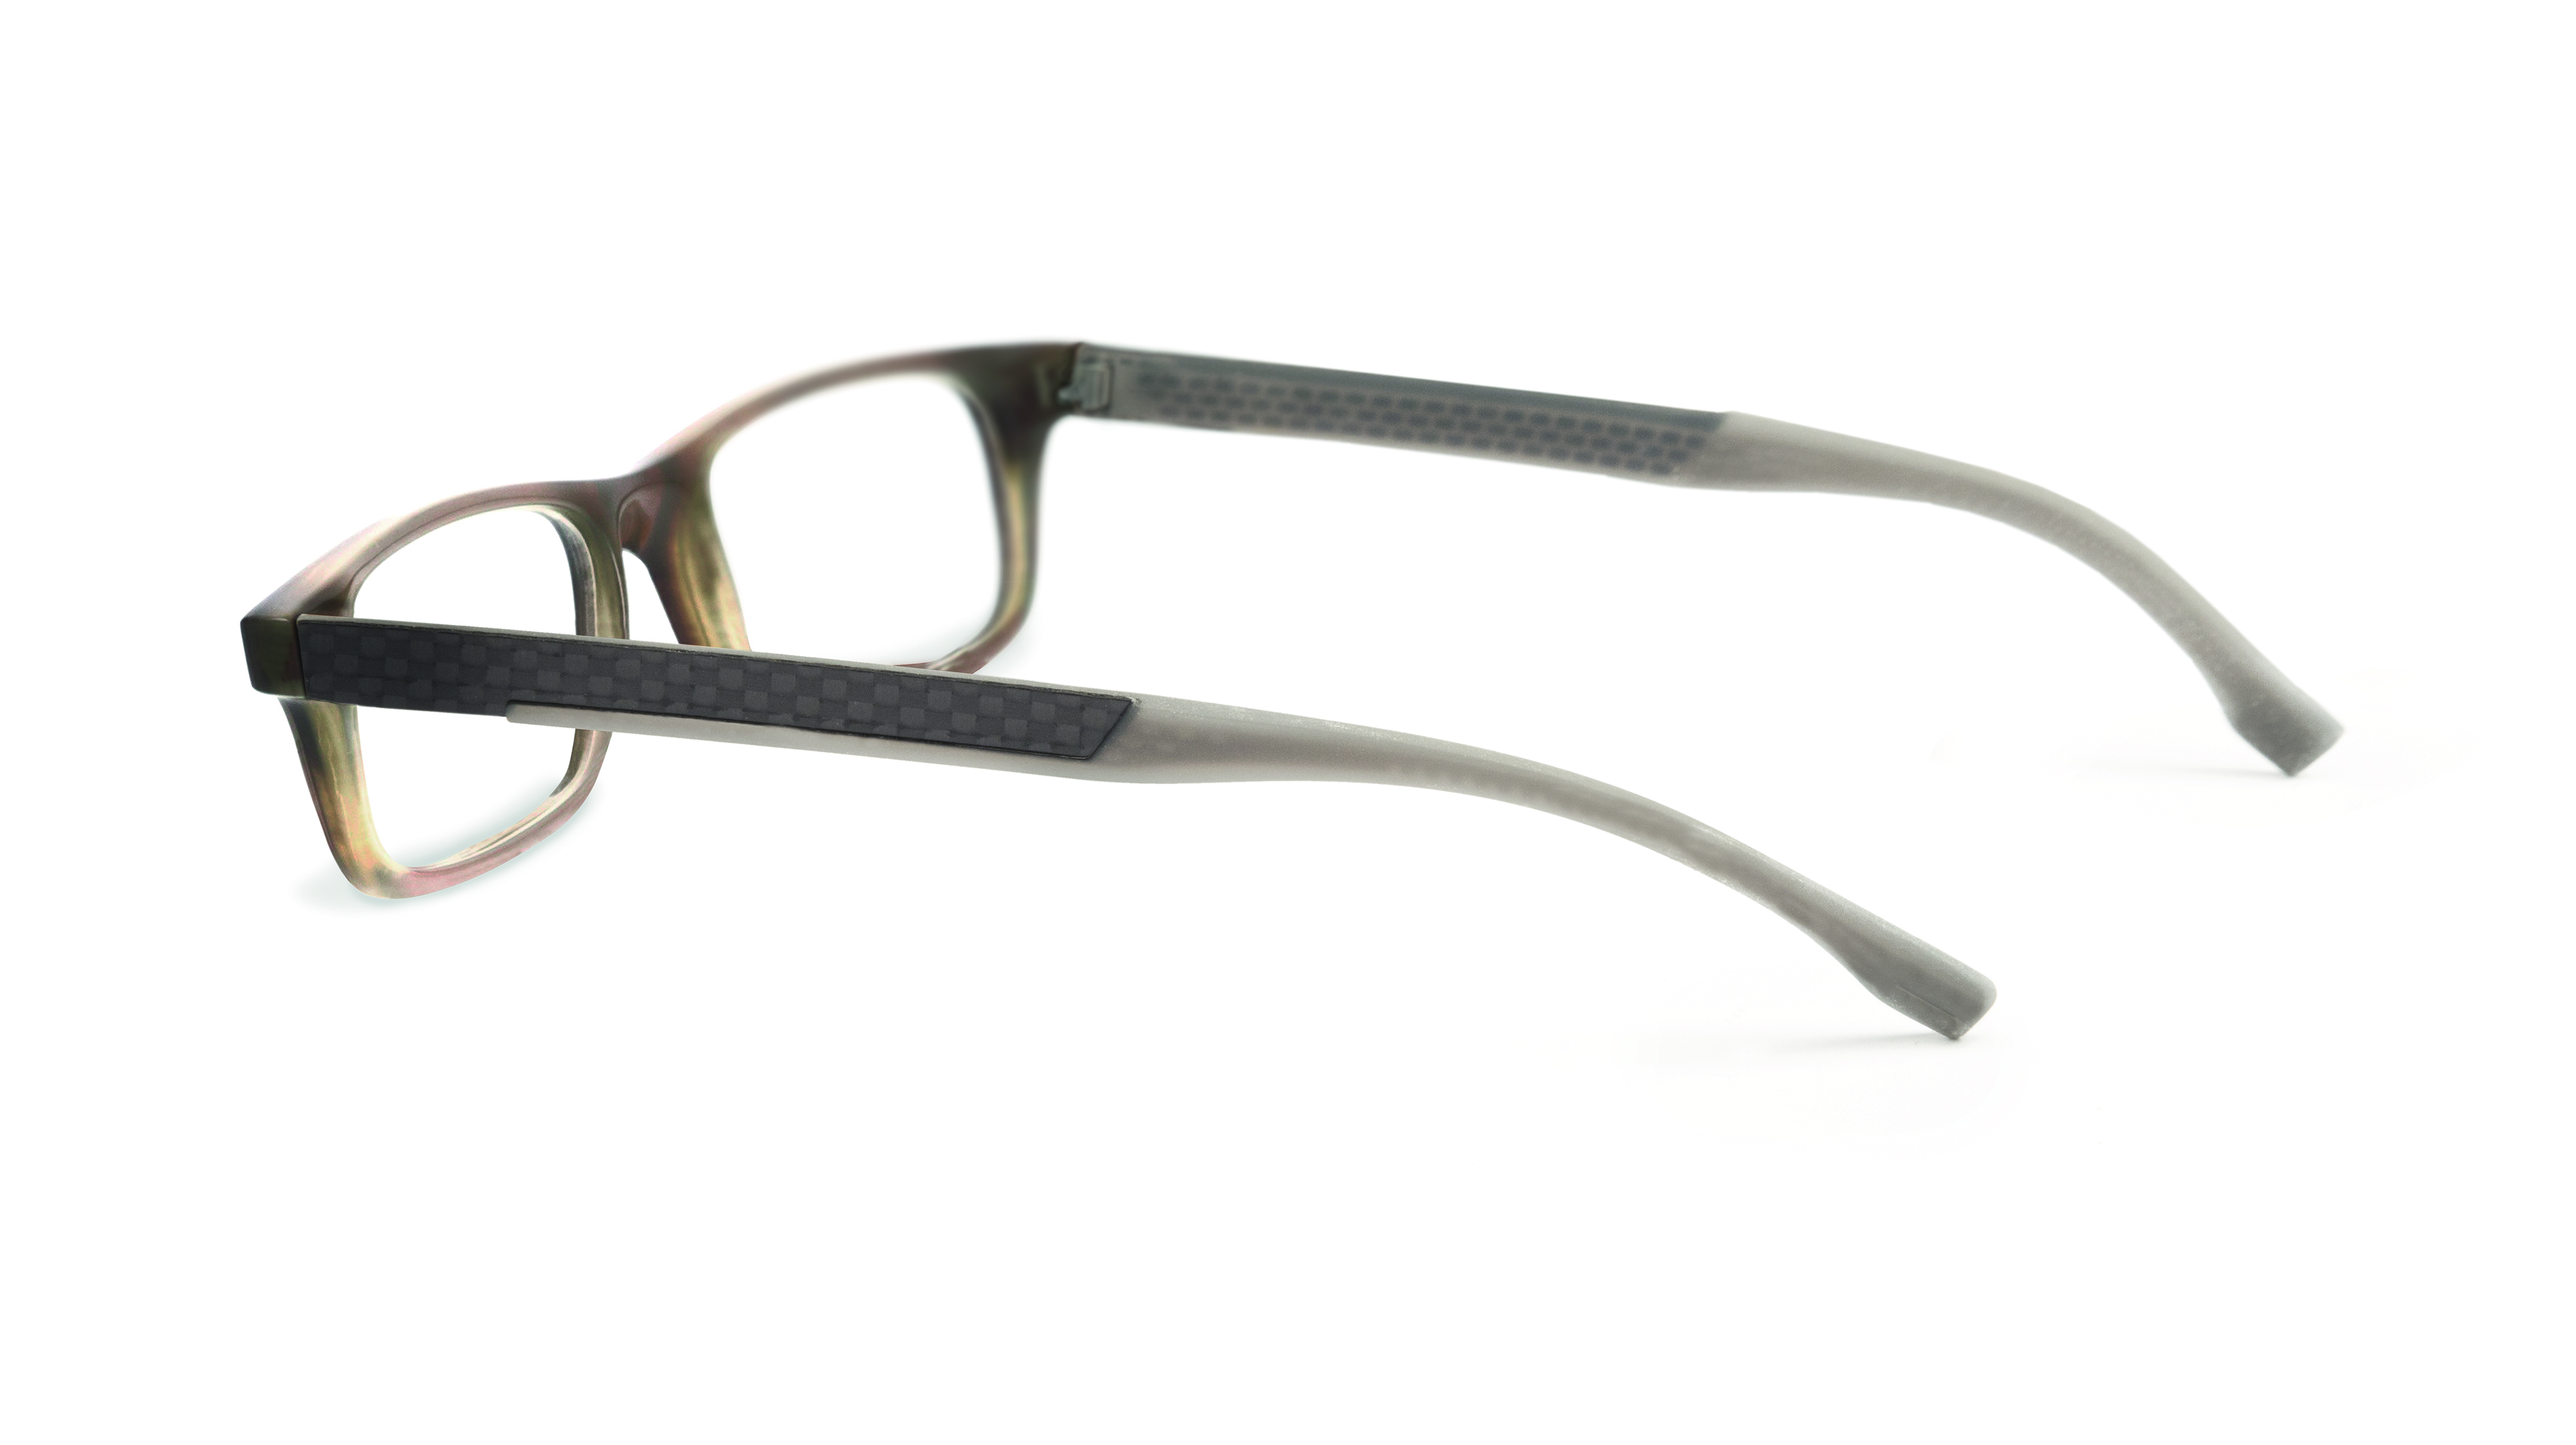 Api and Ems cooperate to develop sustainable solutions for eyewear. (Source: Trinseo)